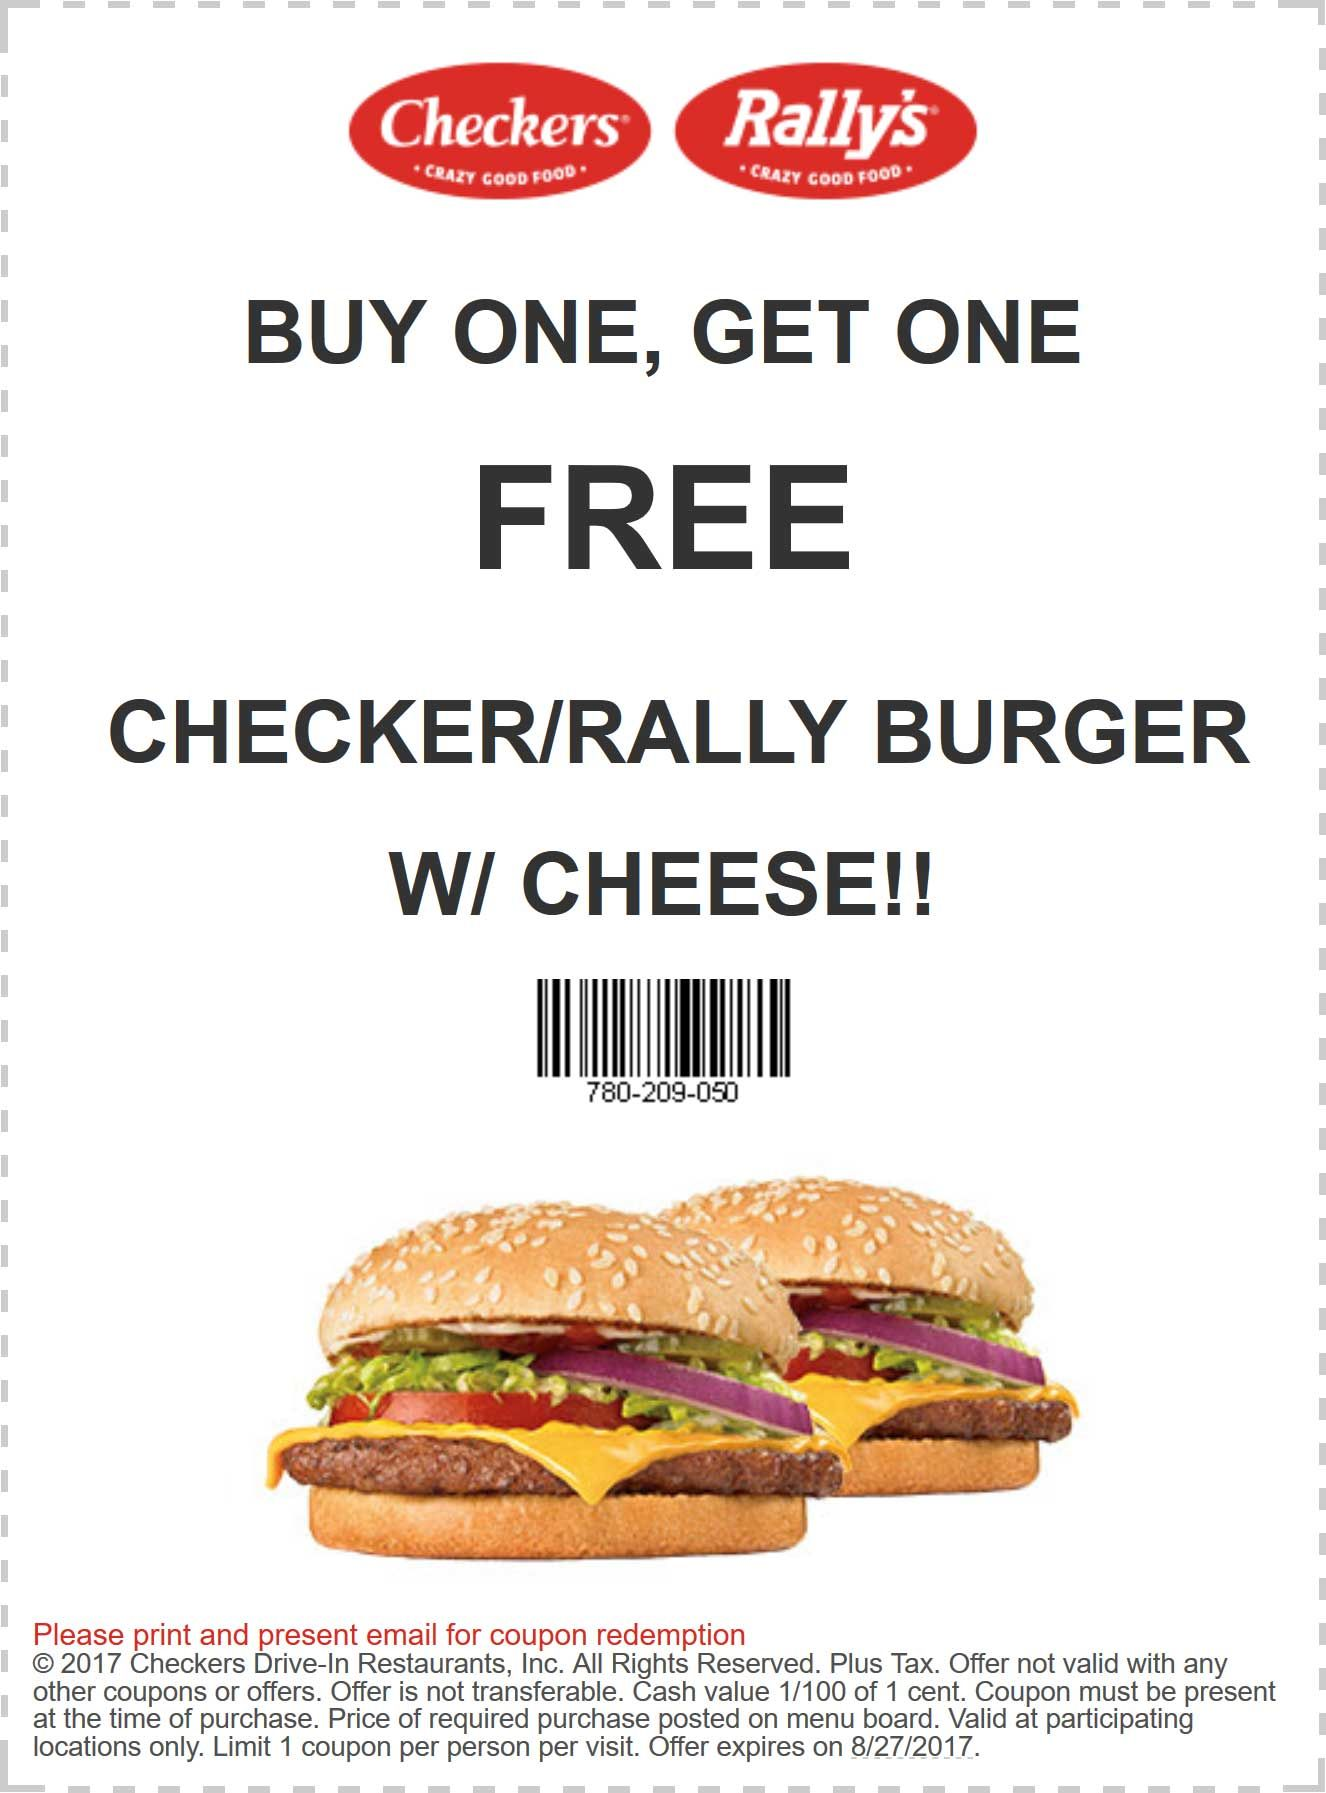 graphic about Checkers Coupons Printable called Pin as a result of The Coupon codes Application upon The Discount coupons Application Discount codes, Application